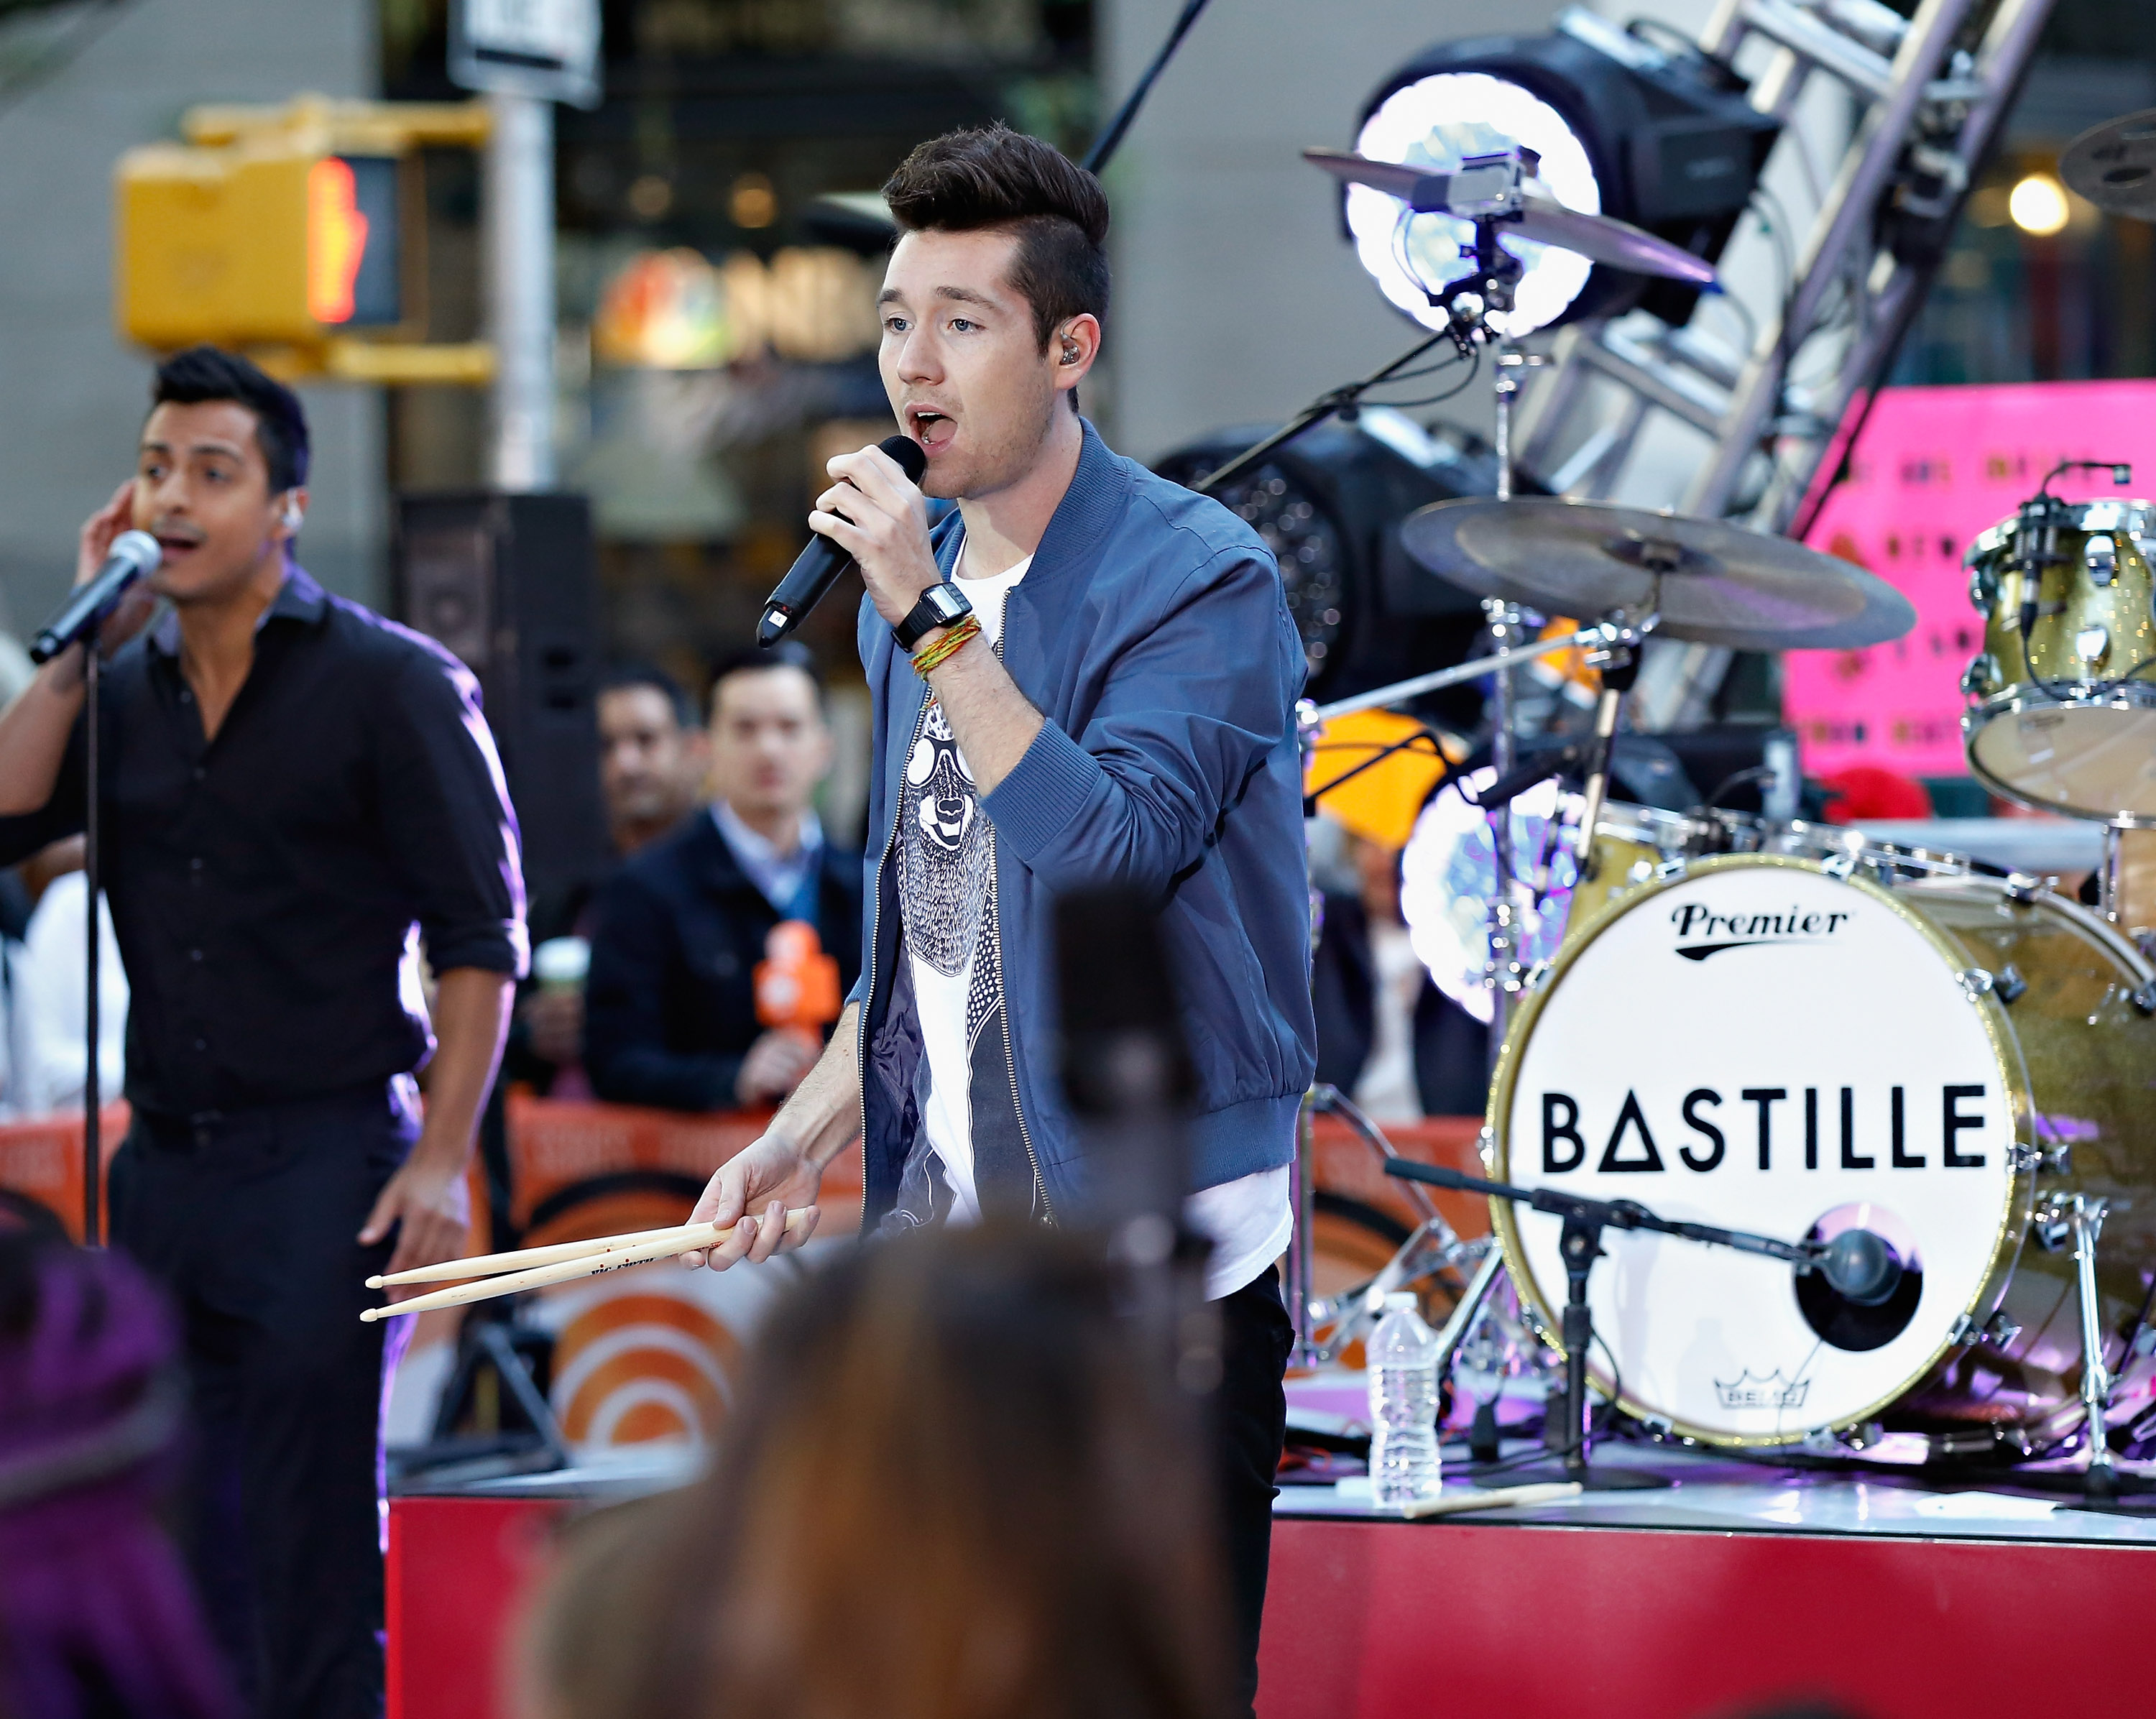 Bastille announce new album with nice little teaser video to get you excited